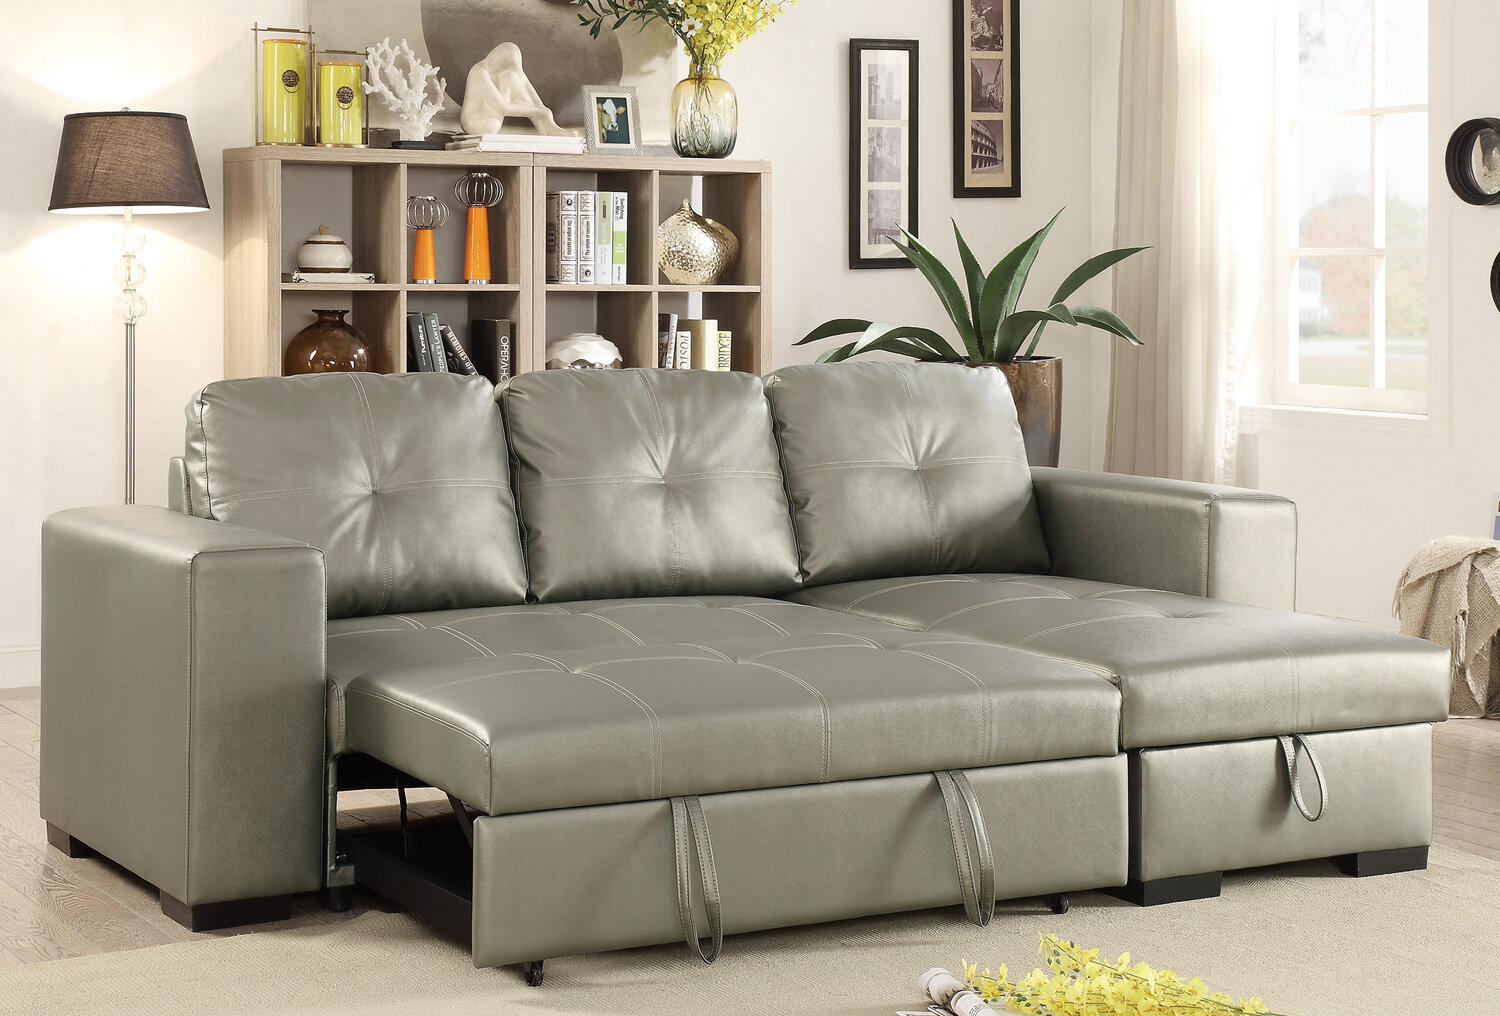 a impeccable inspiration sofa home p pull outcouch hide with ideas designs feat pleasant design then ah fold affordable out pic wooden material furniture bed room gracious picturesque living smooth couch loveseat on ing plus